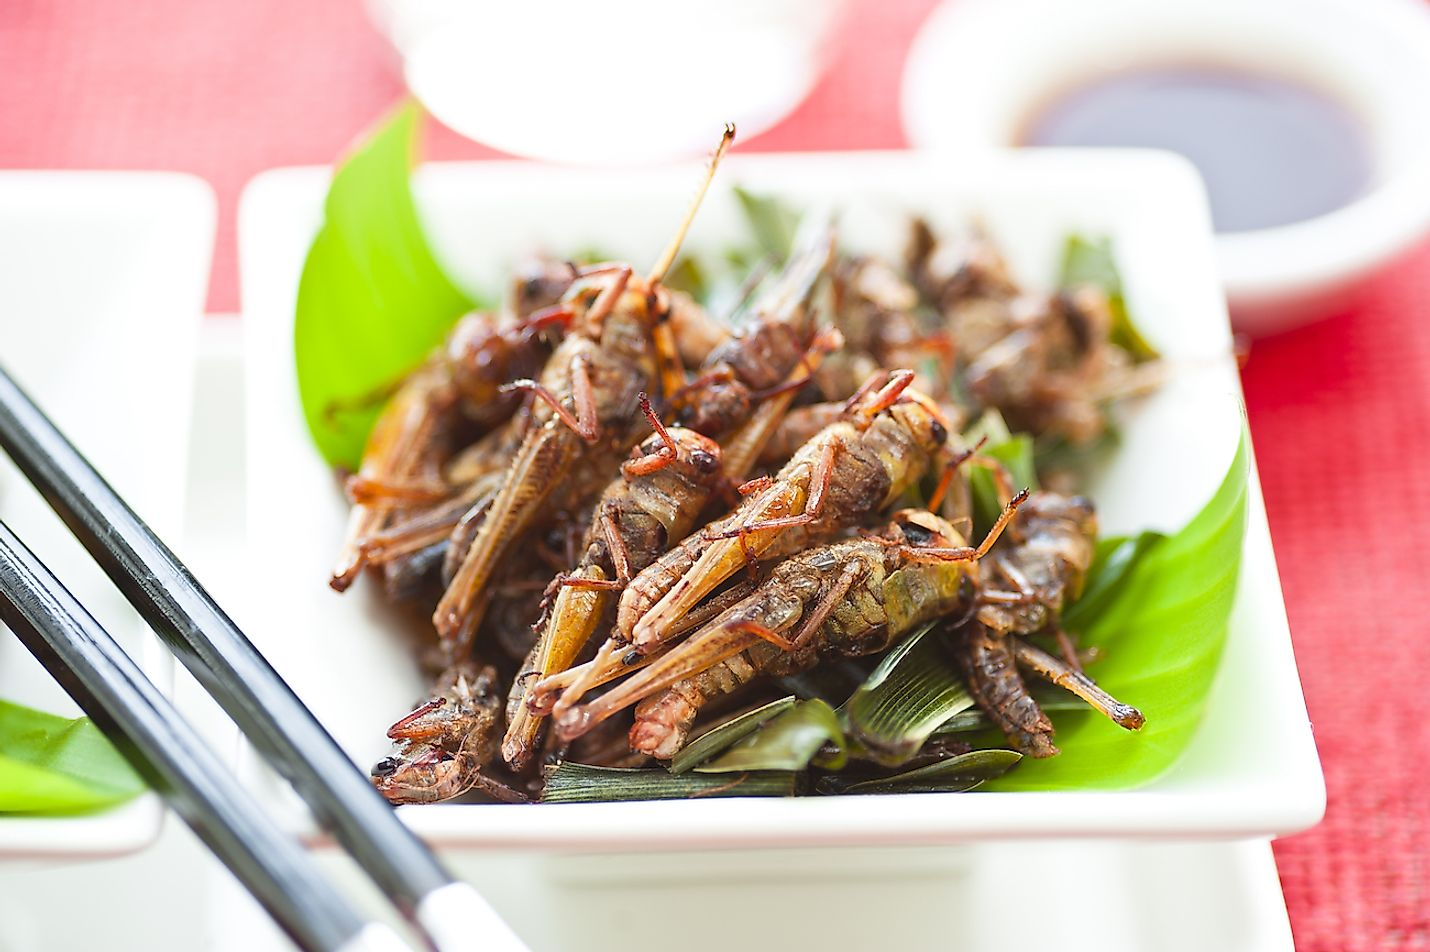 Fried grasshoppers served on a plate. Image credit: p.studio66/Shutterstock.com